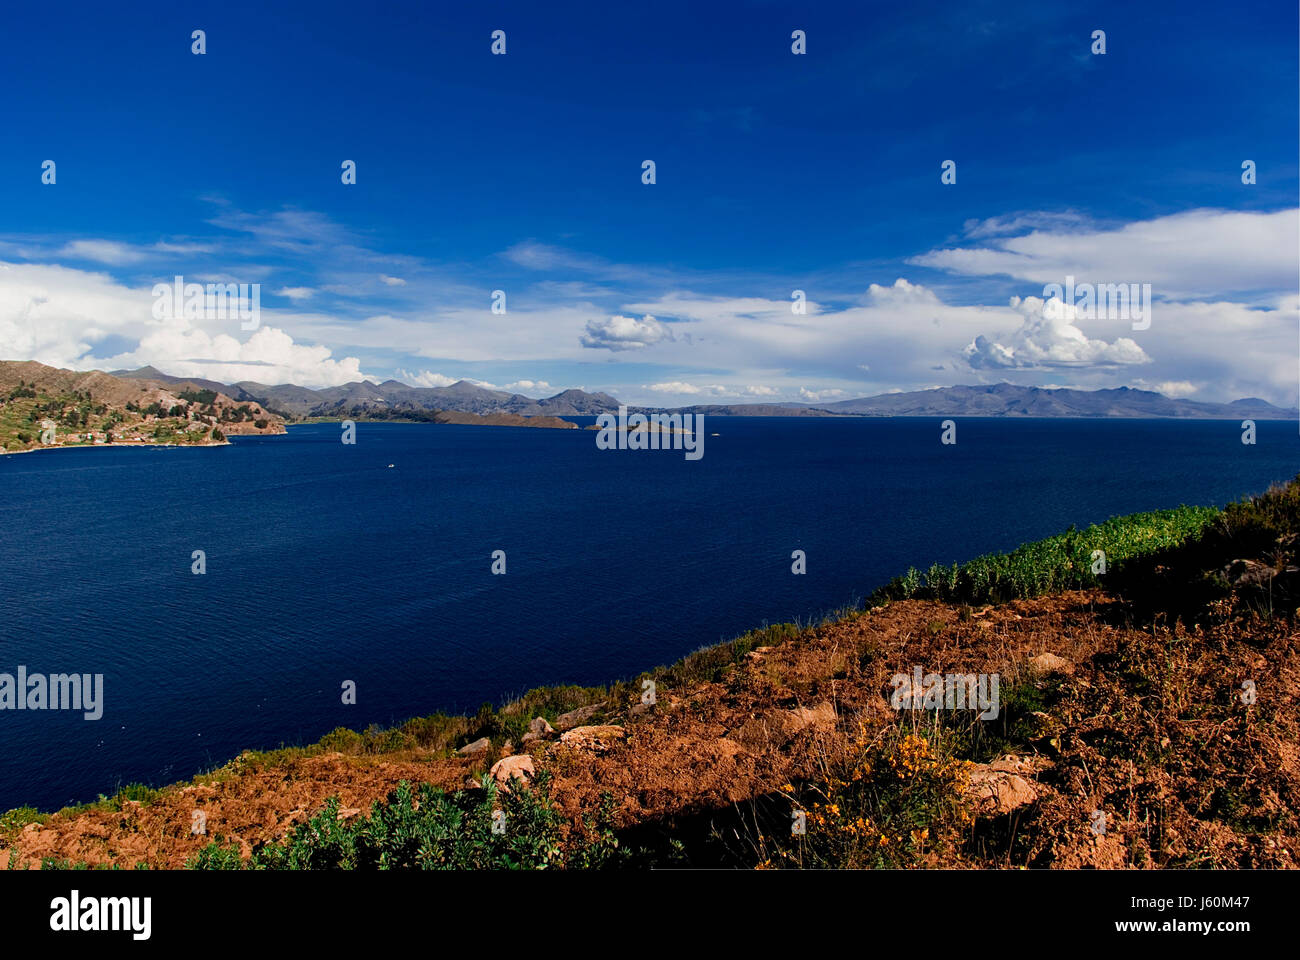 south america peru andes bolivia salt water sea ocean water blue mountains - Stock Image